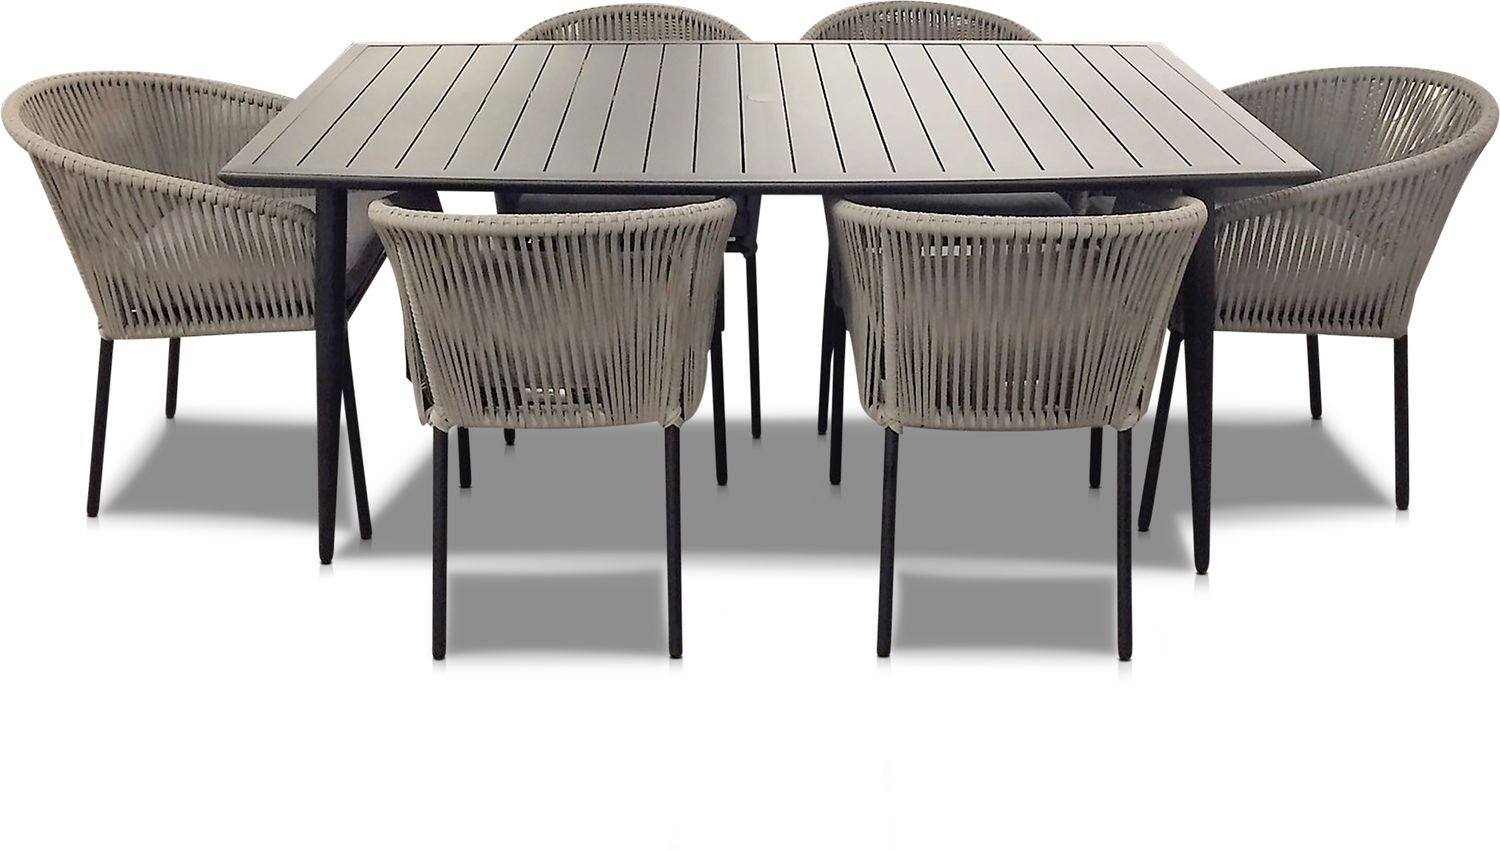 Outdoor Furniture - Paloma Outdoor Dining Table and 6 Chairs